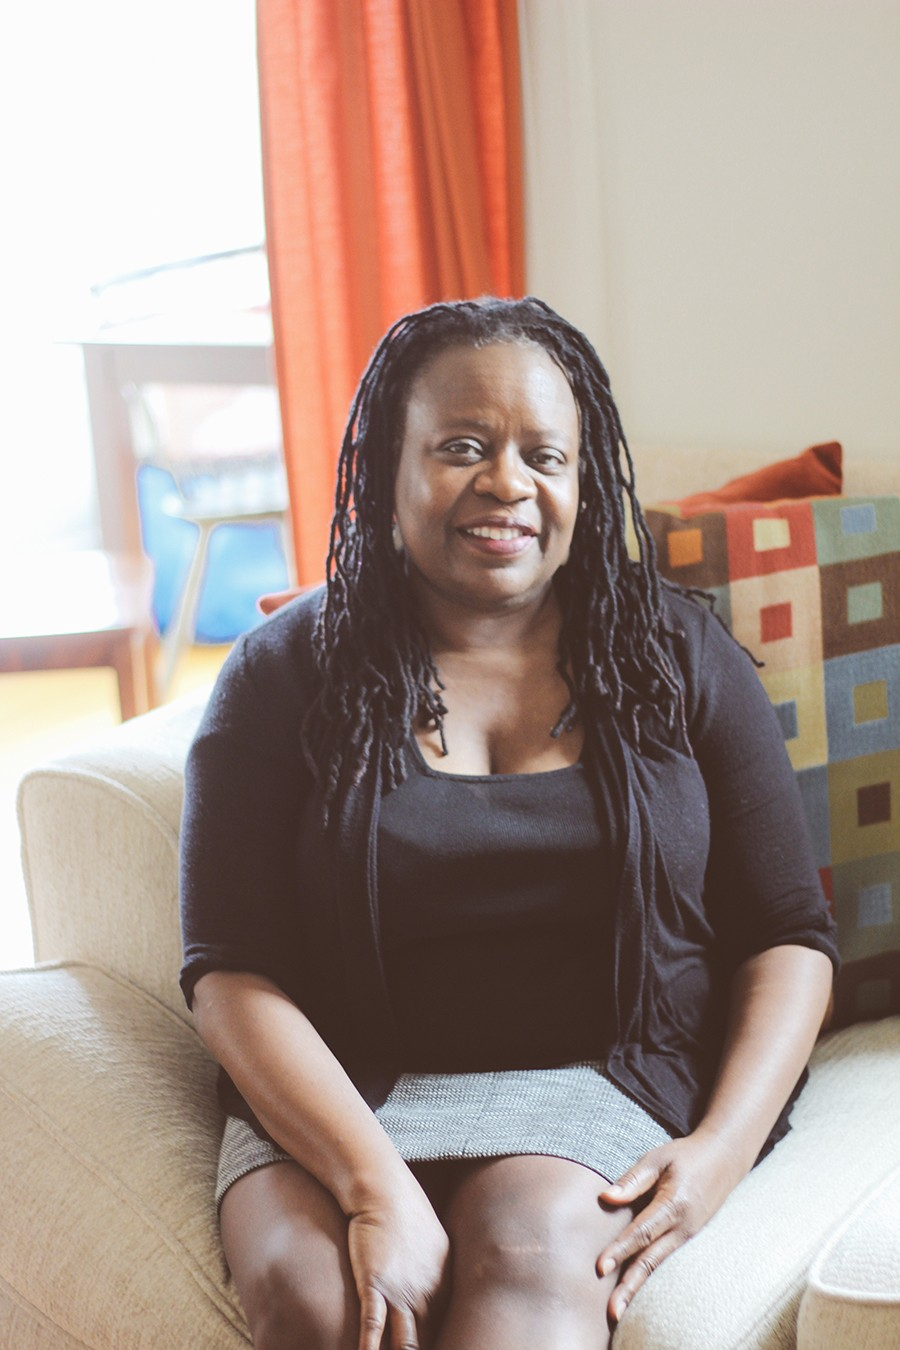 Yvonne Welbon - Filmmaker, founder of Sisters in Cinema and the Black Lesbian Writers Room